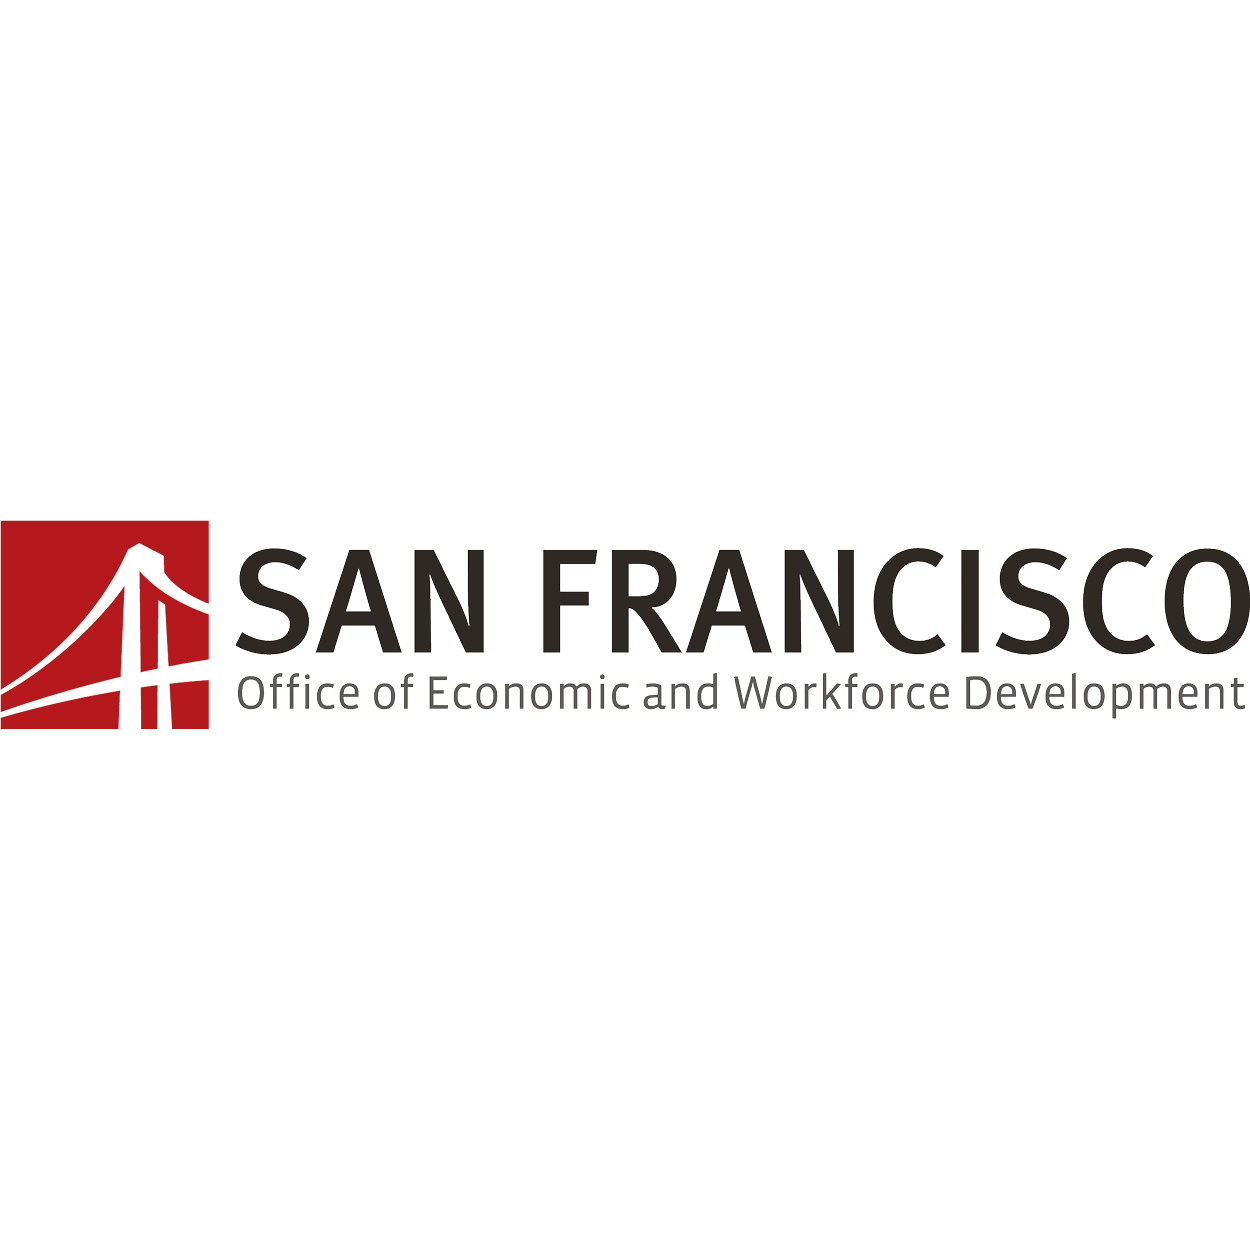 sf logo square.jpg